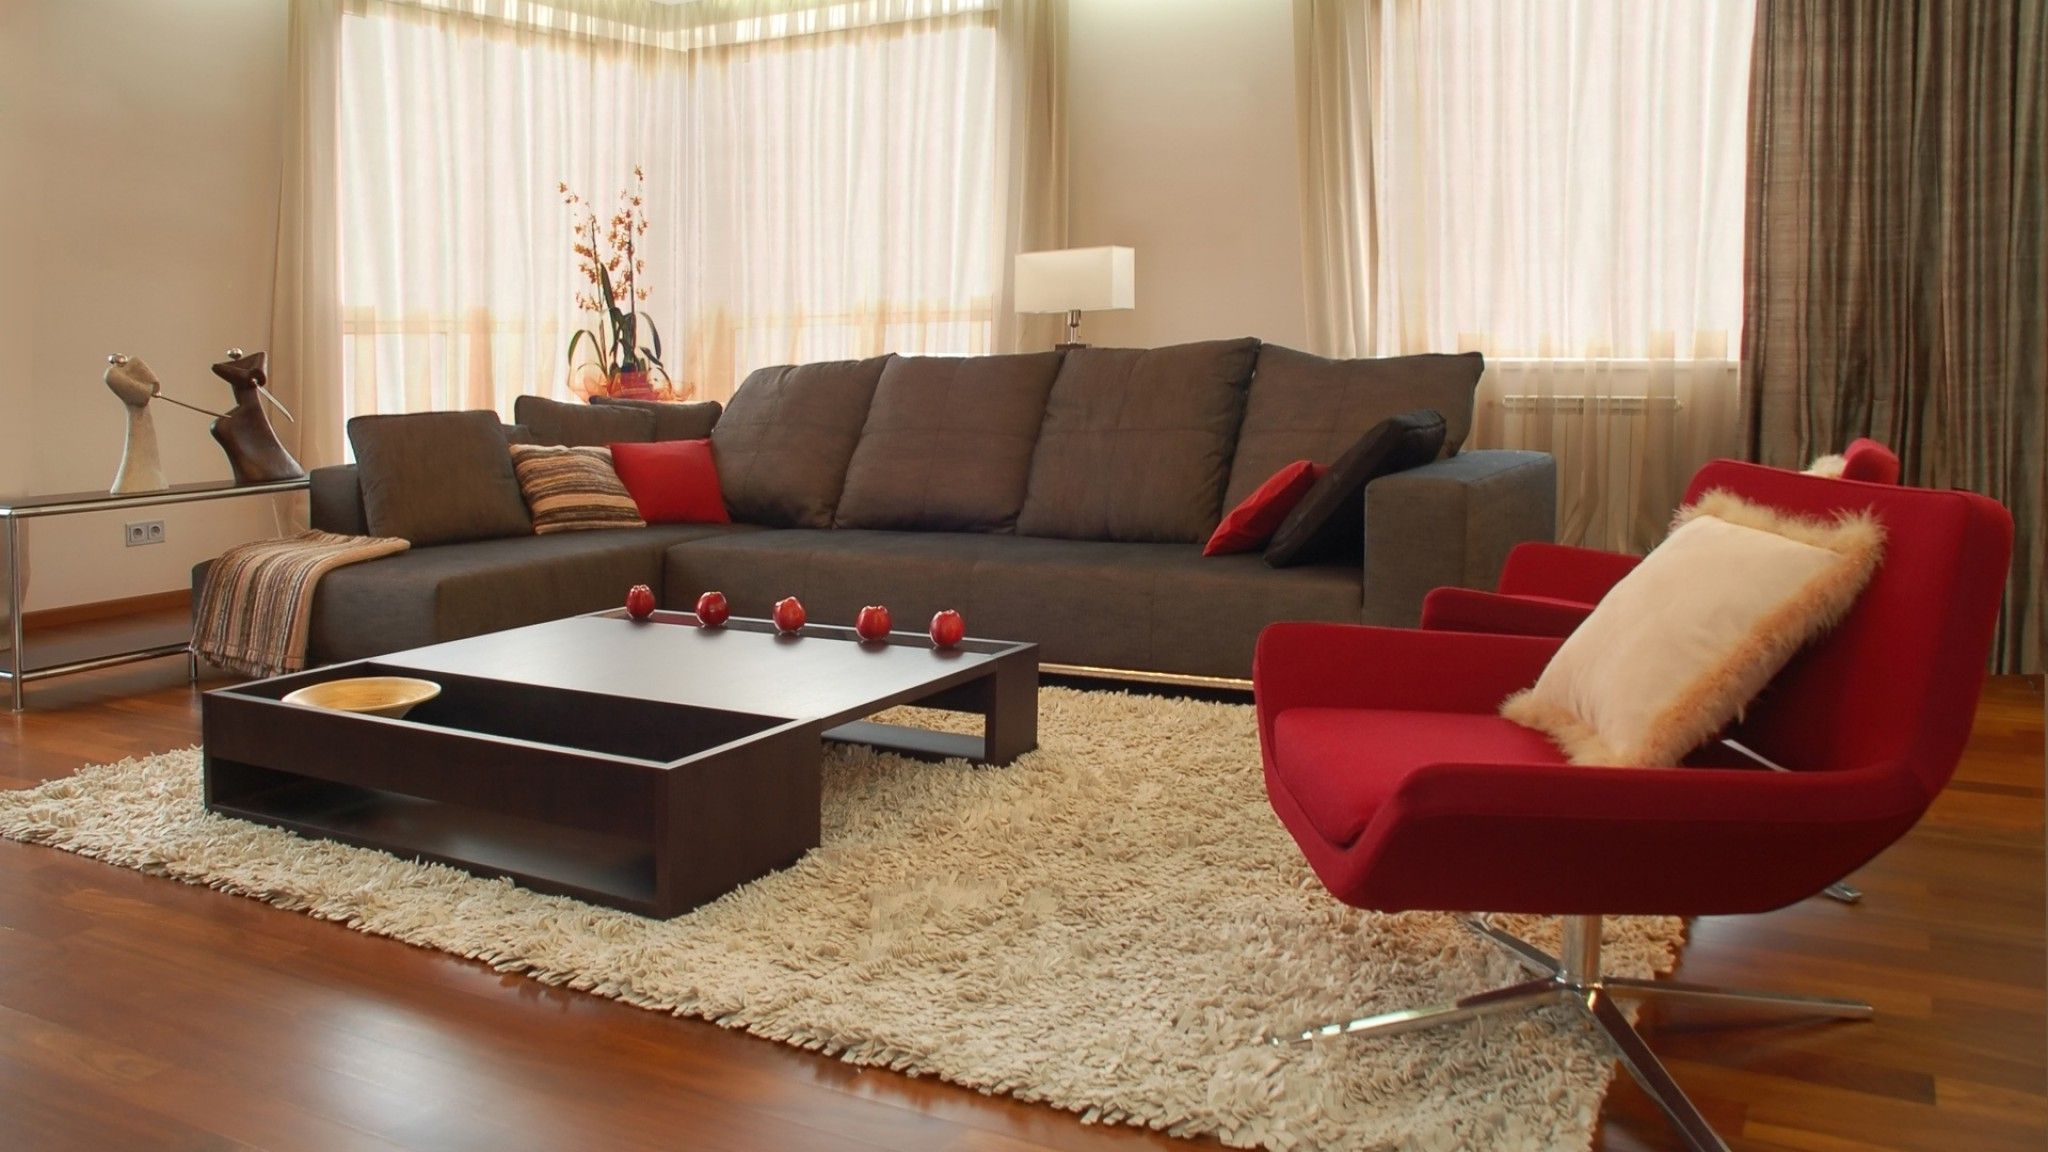 Brown And Red Living Room Ideas living room , get an elegant but comfy welcoming space through